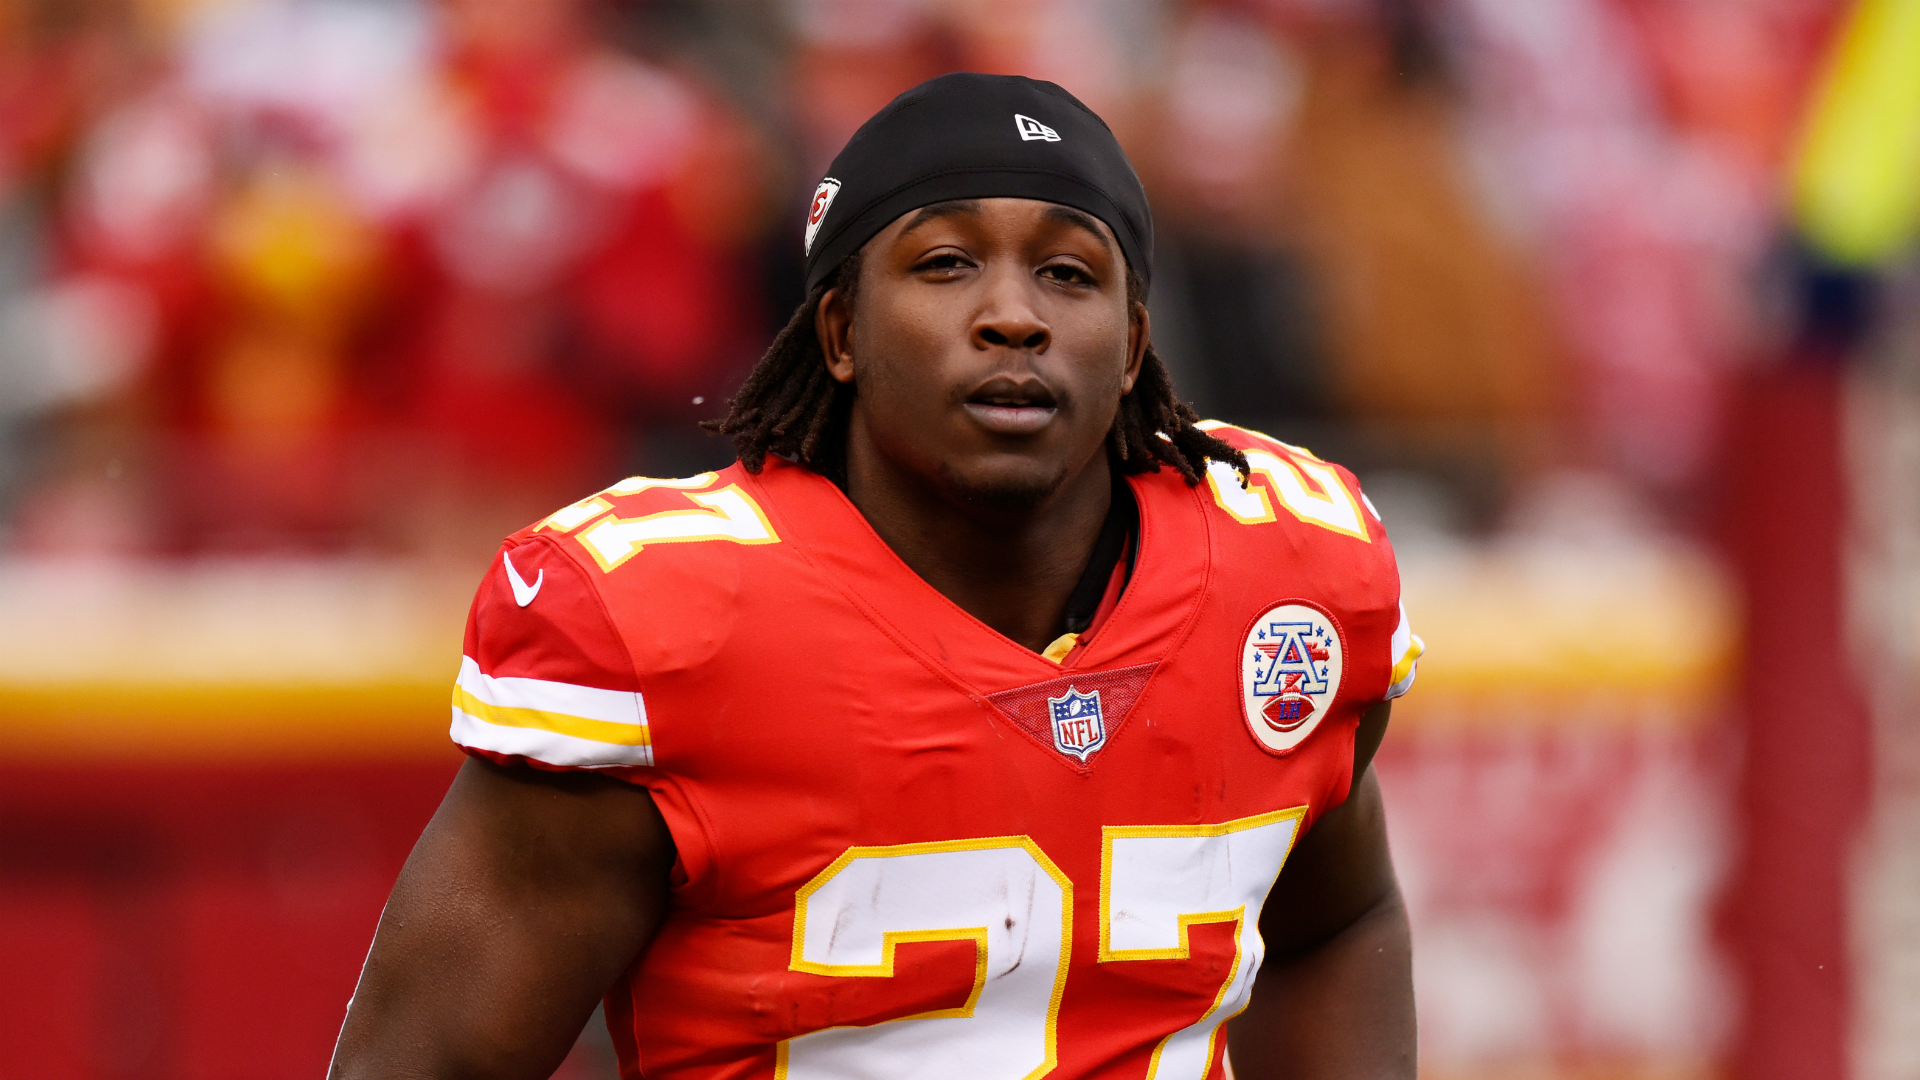 Video released of National Football League  star Kareem Hunt pushing, shoving woman inside hotel